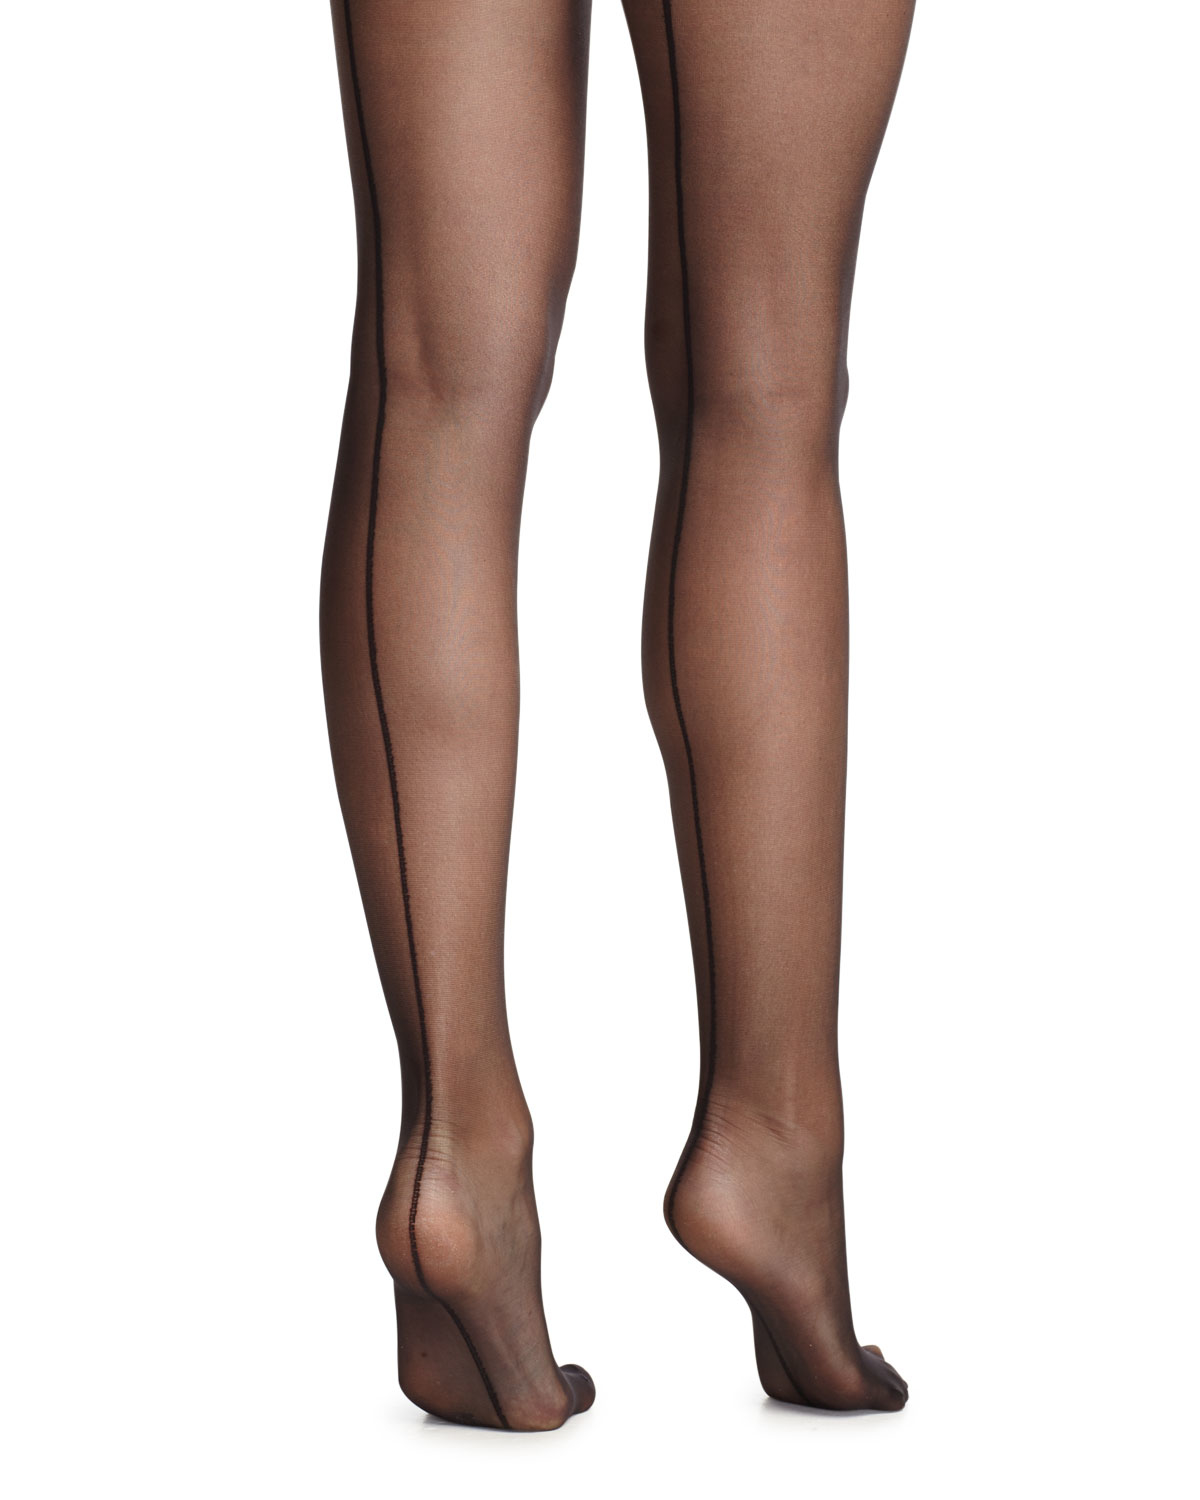 Hot, made back seam tights target